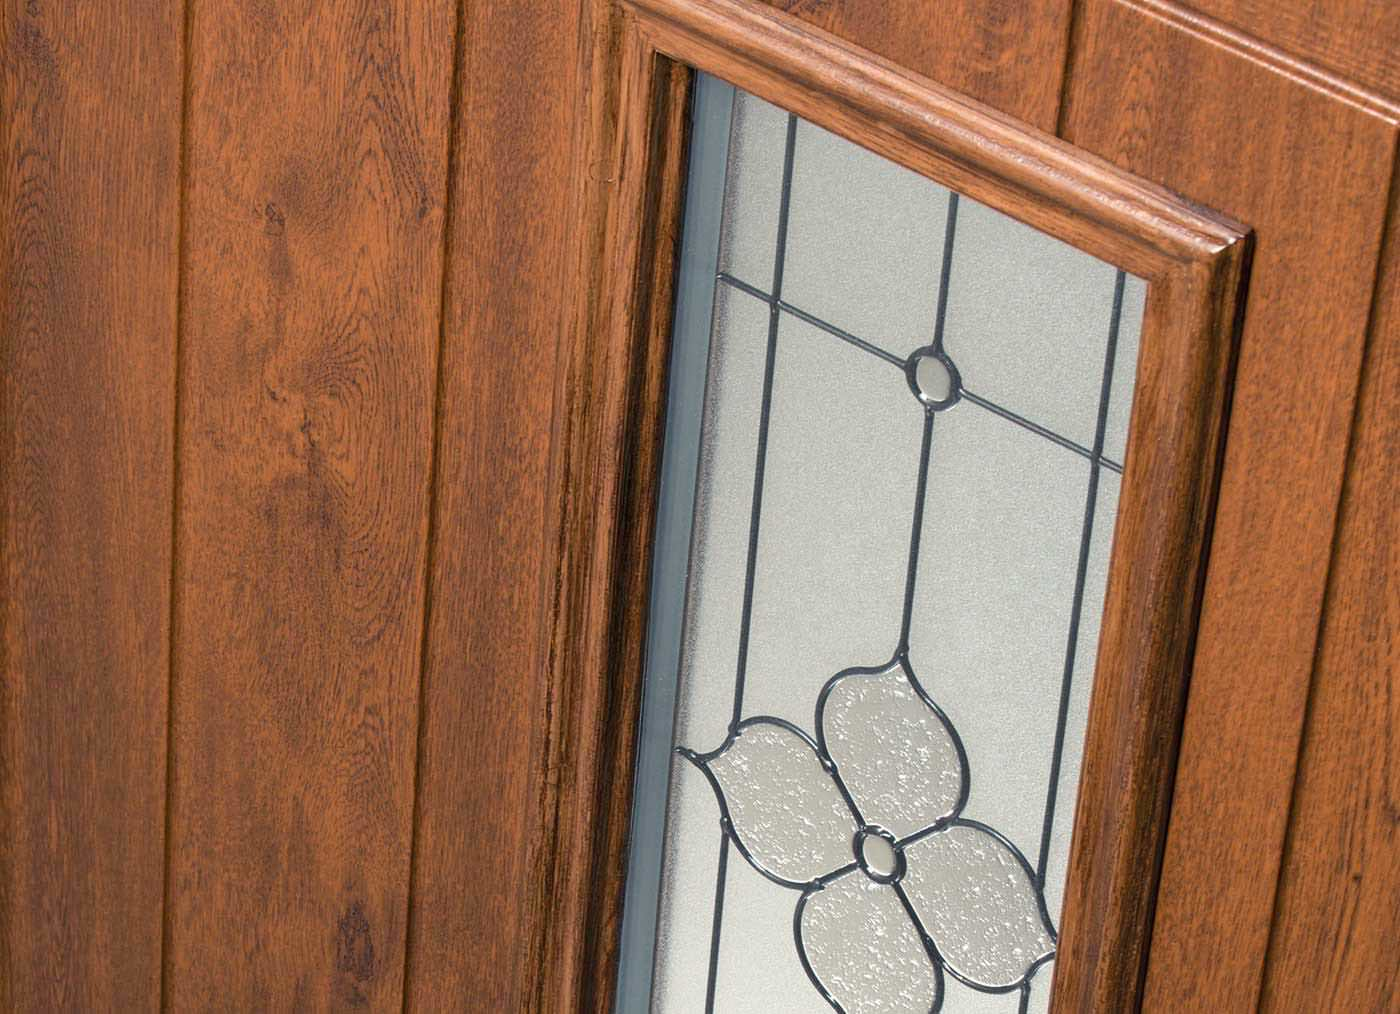 Brown & Woodgrain Composite Door Timeline Image